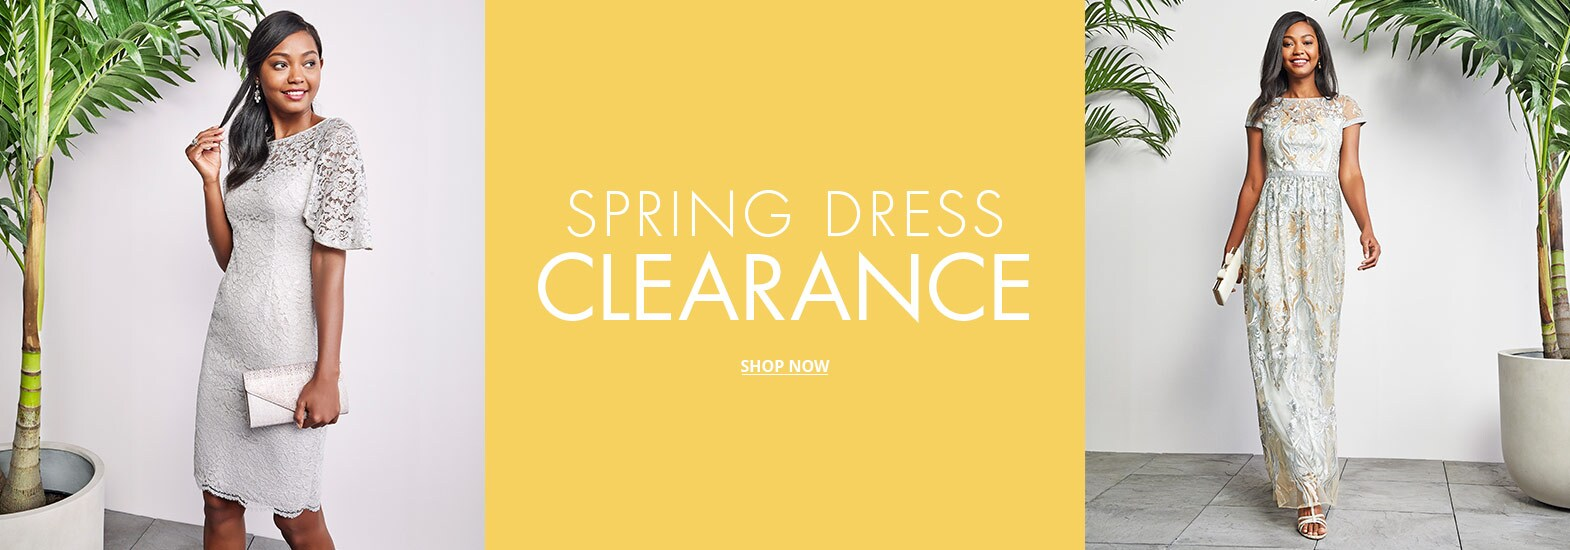 Shop the spring dress clearance